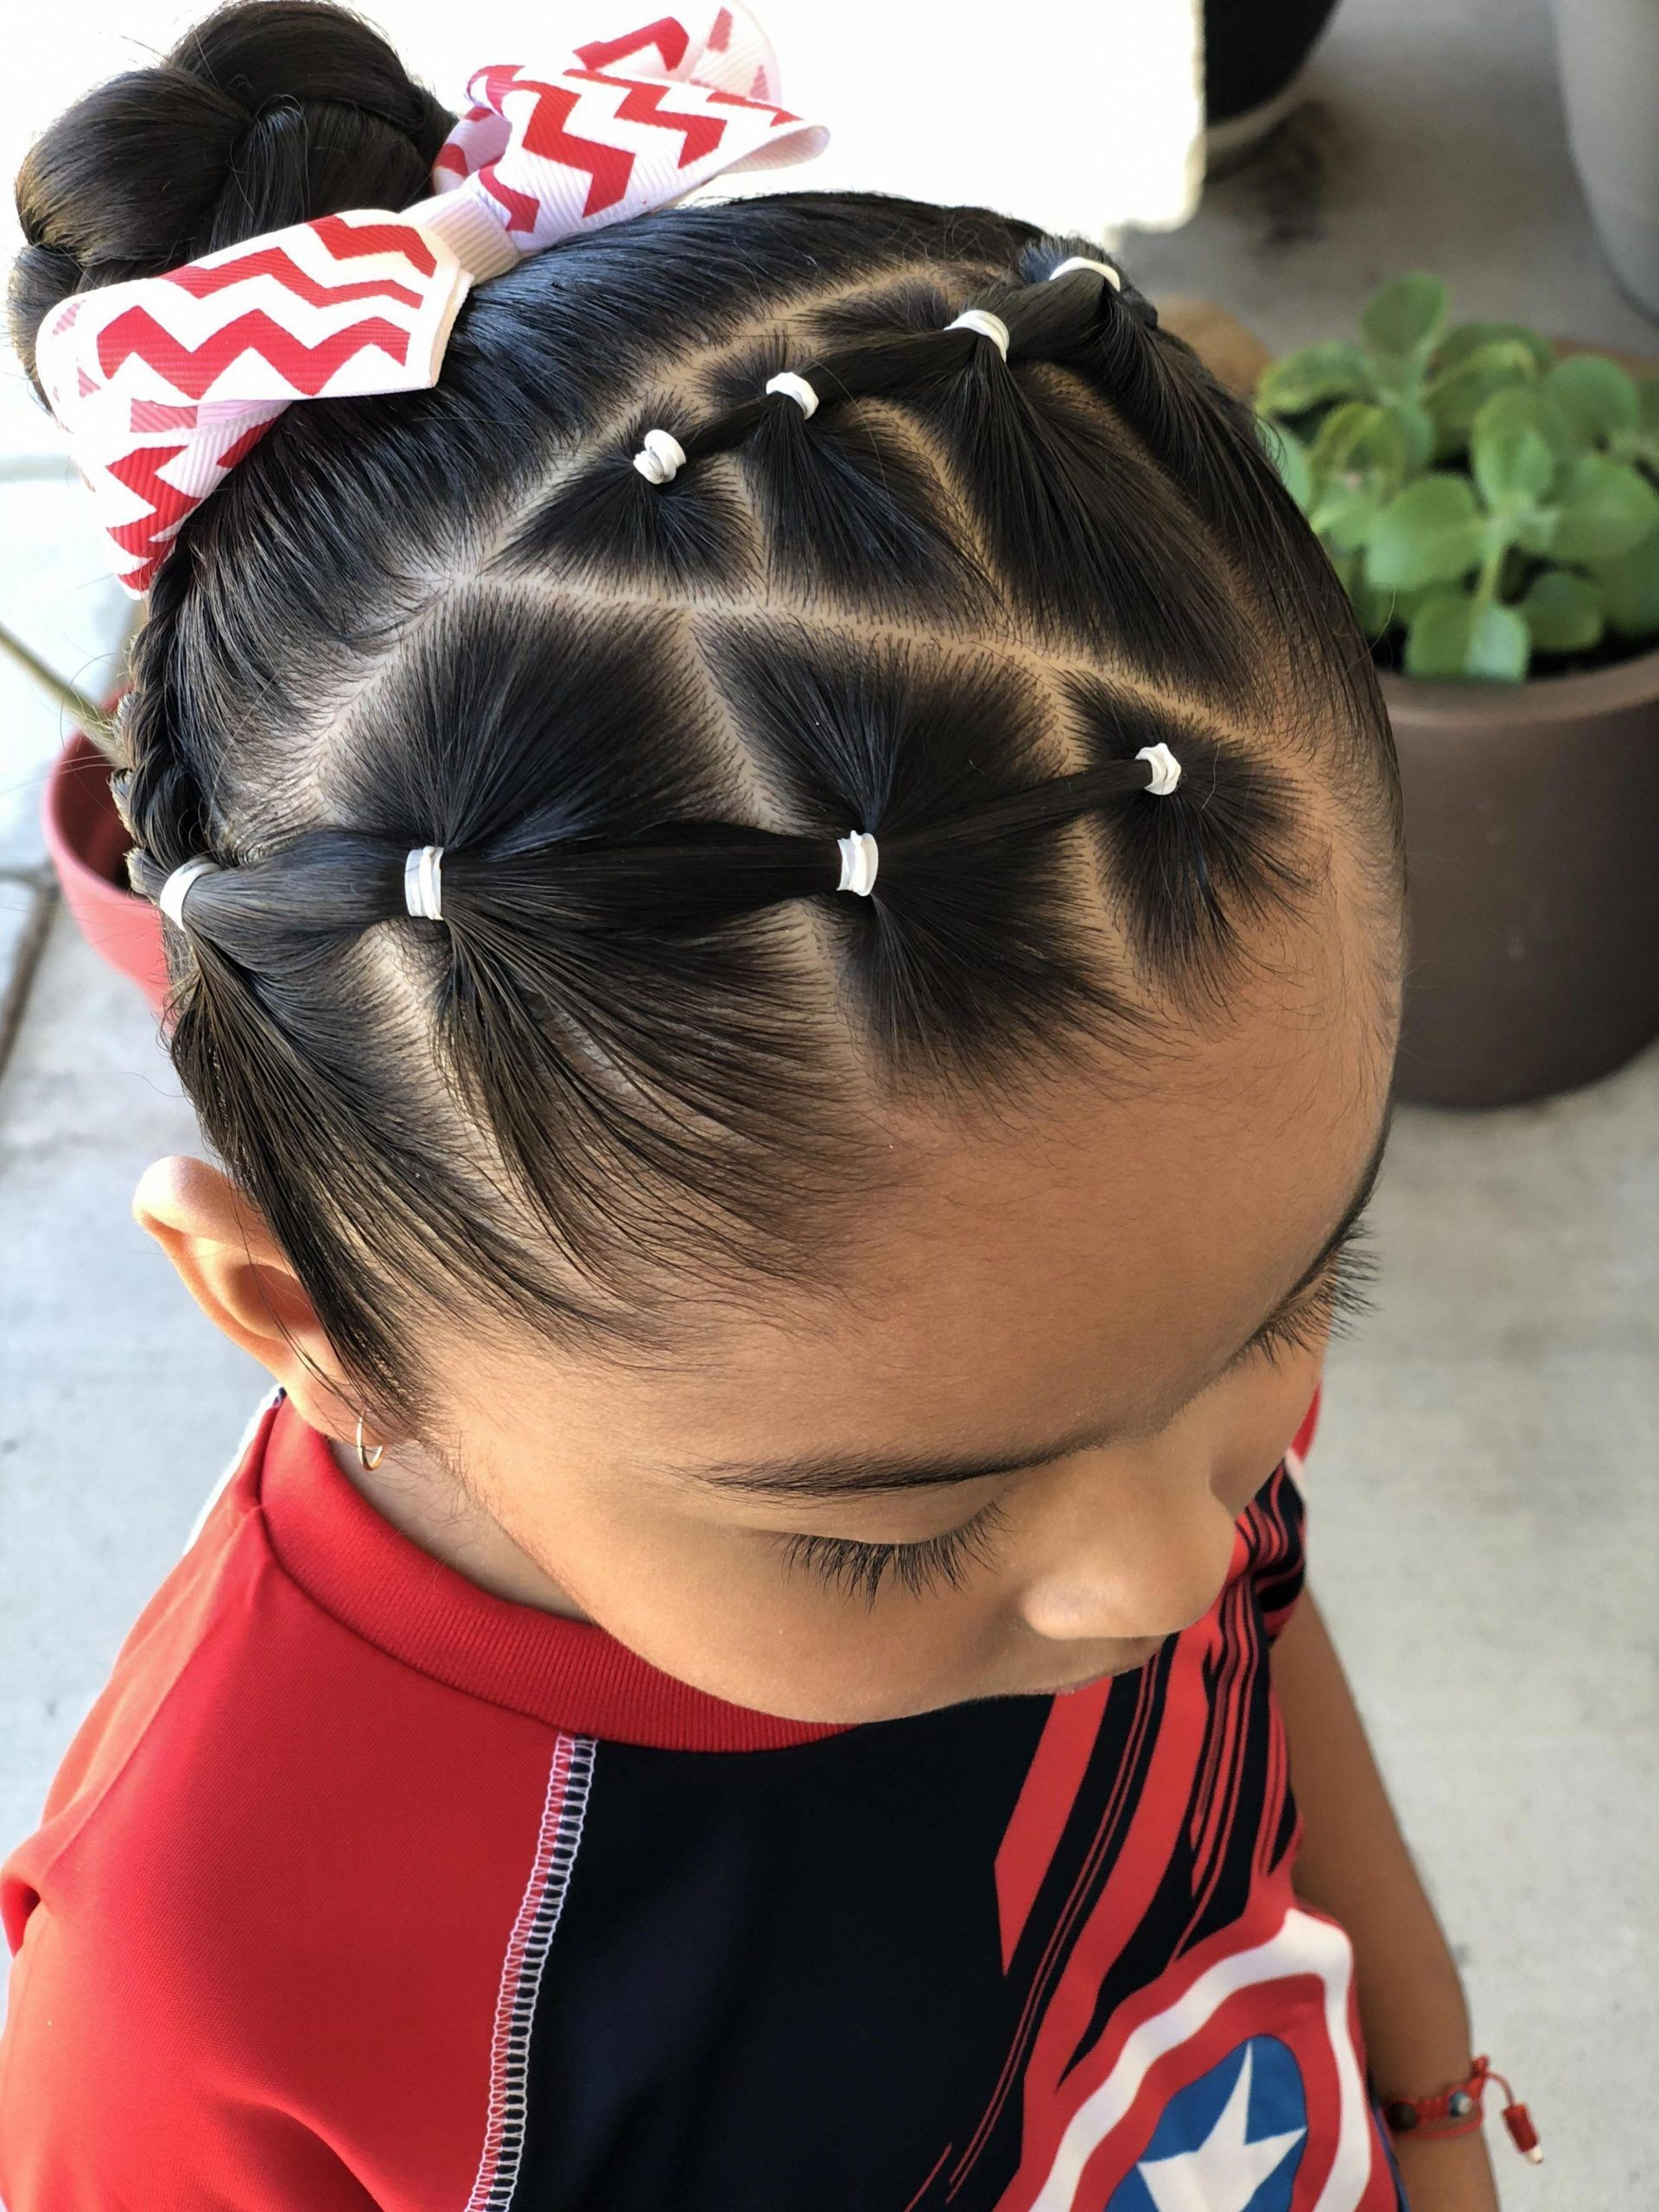 9+ Top Image Baby Hair Style Girl Short Hair   Baby hairstyles ...